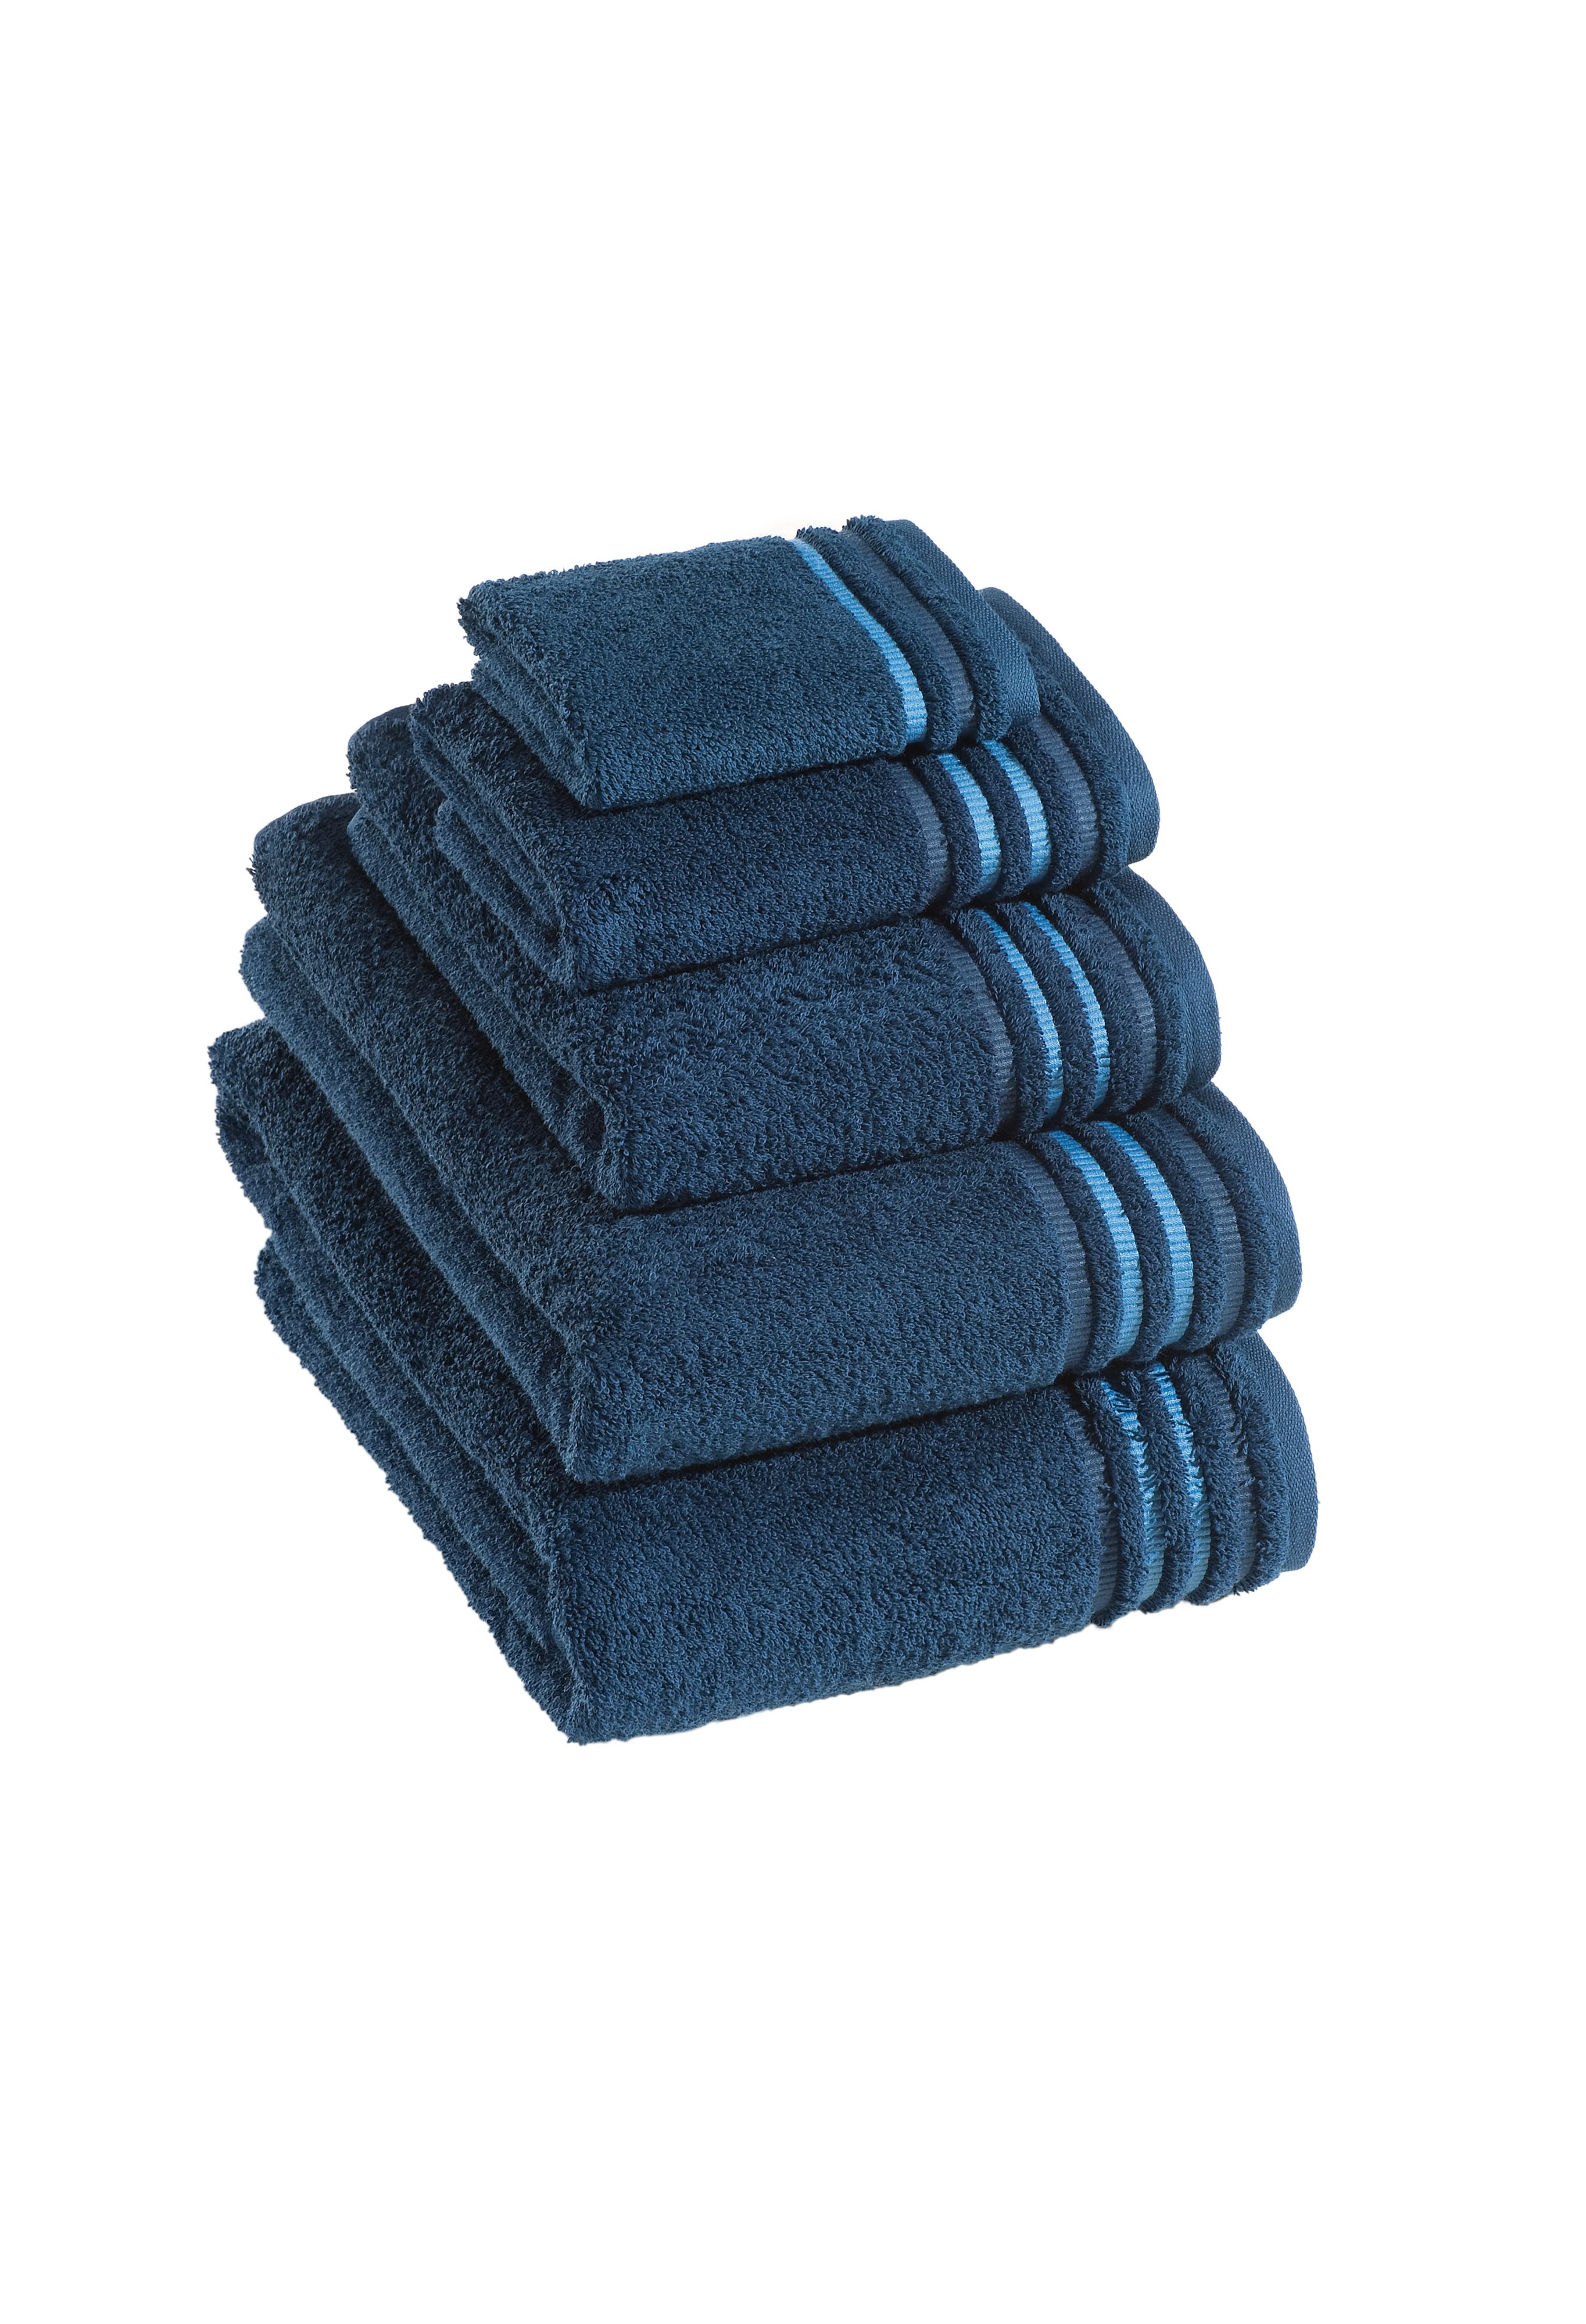 De Lux towel range in winternight